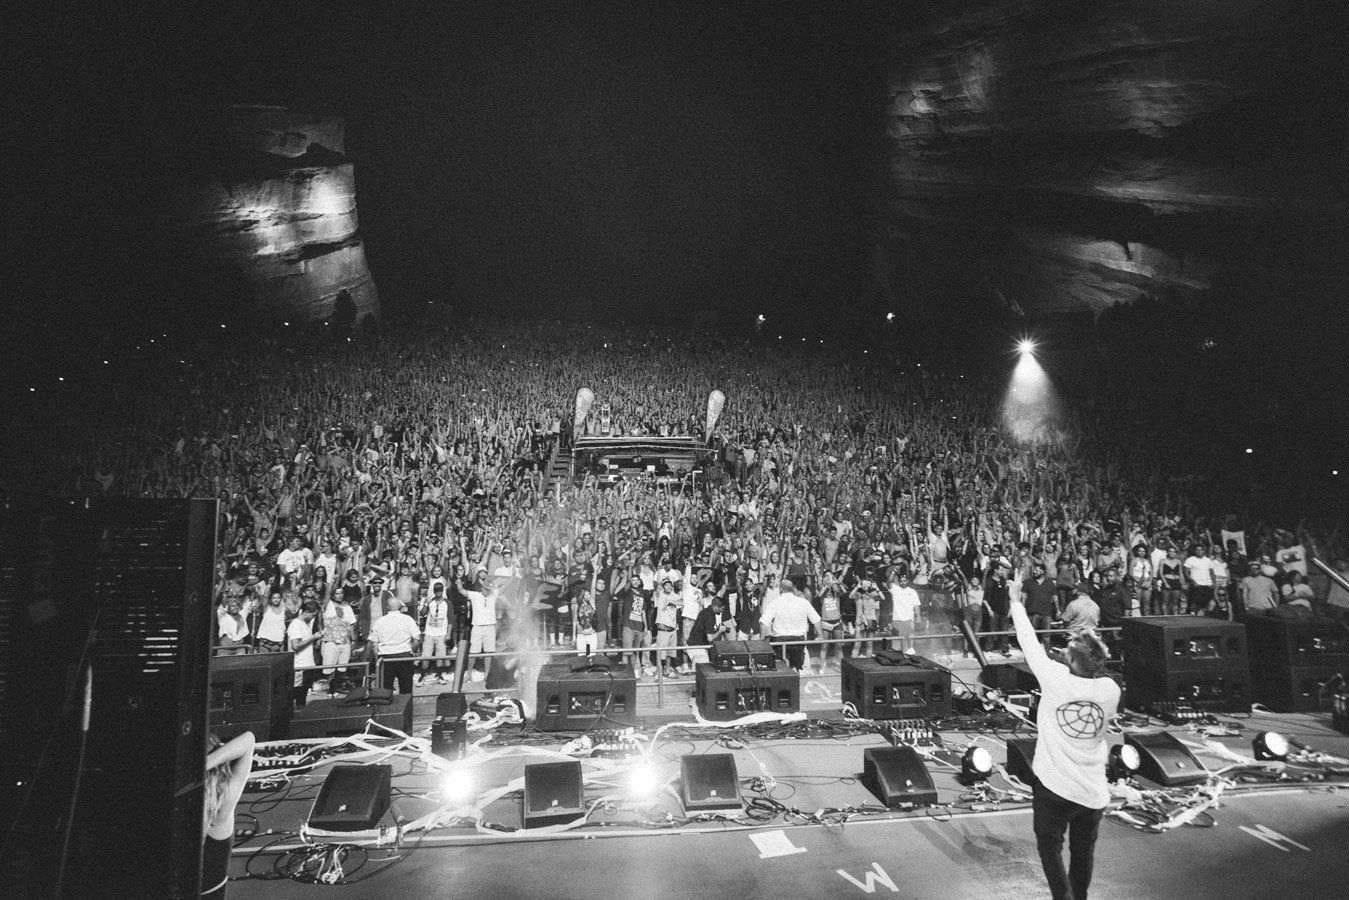 SEP 3RD RETURNING TO RED ROCKS  BACK AFTER ✌�� YEARS  @MDBLOCKPARTY  https://t.co/F1ZQrTZmIi https://t.co/XbB0h1bRtI